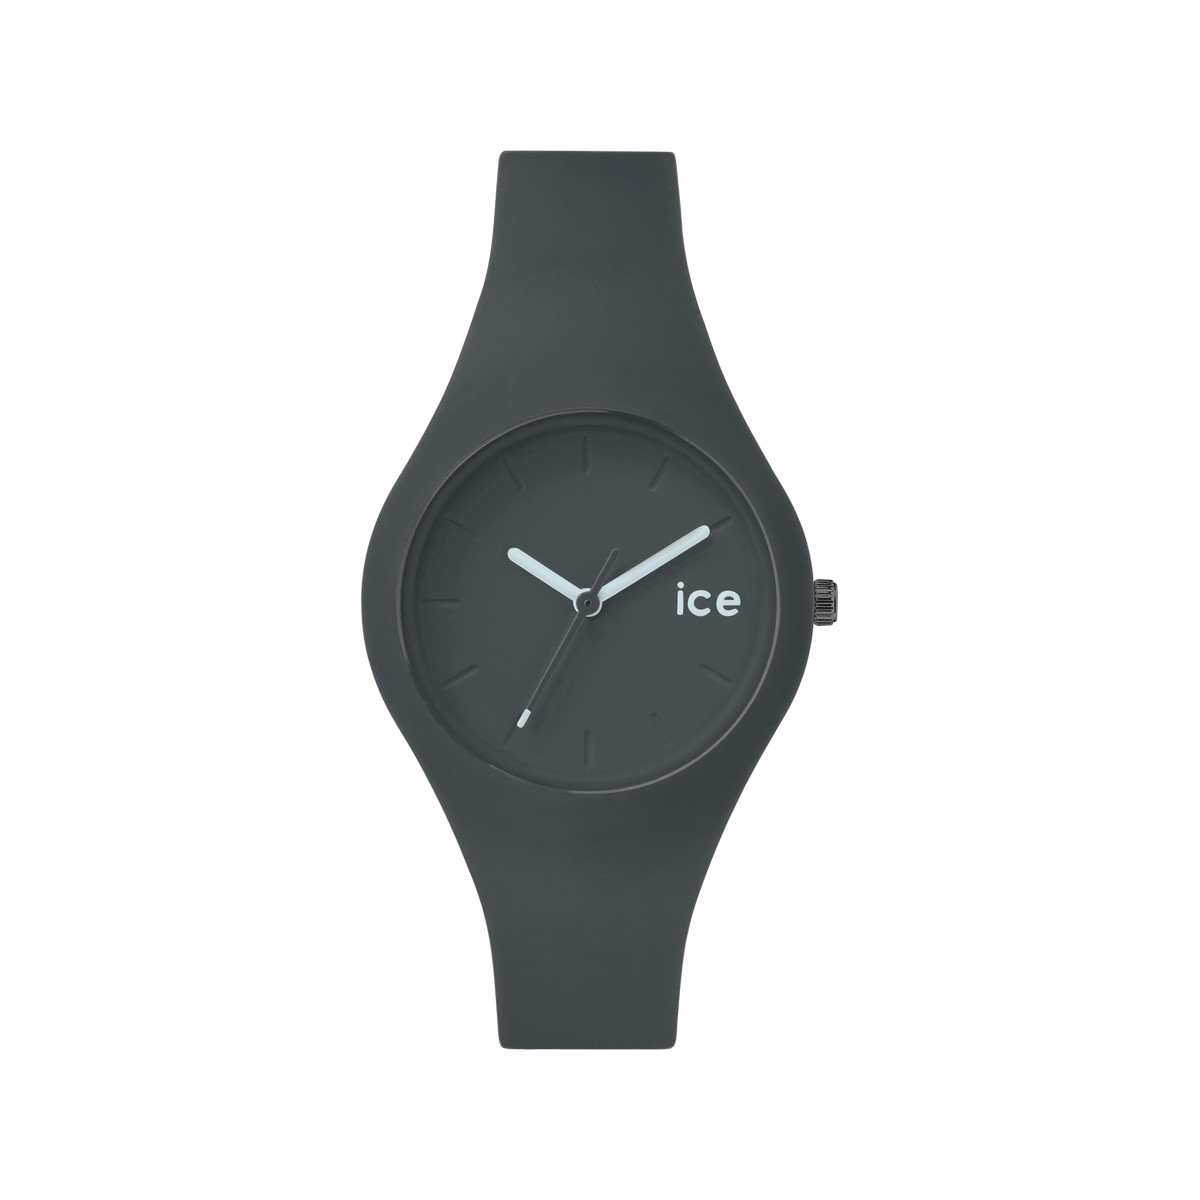 Montre Ice Watch mixte silicone gris